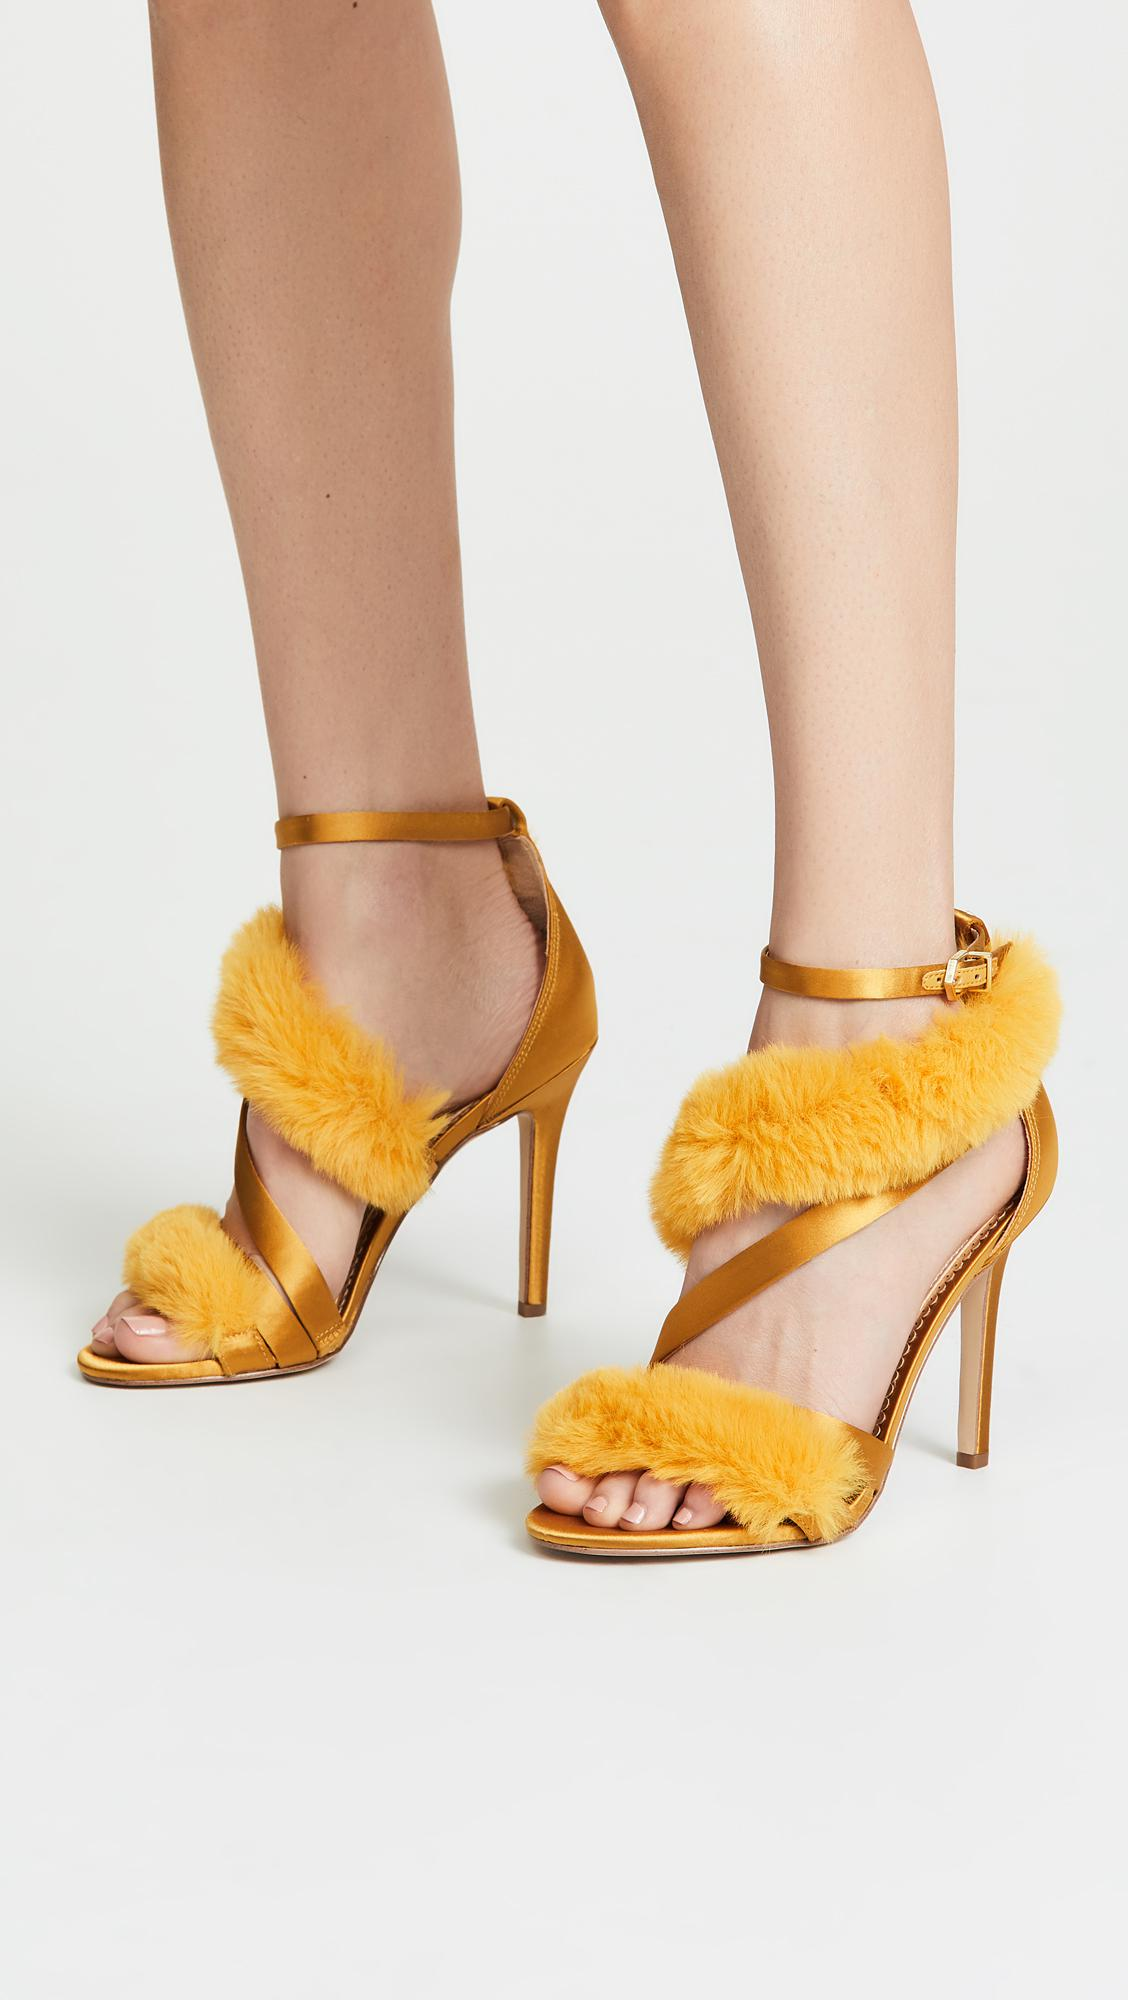 e8bc69cb0a05 Gallery. Previously sold at  Shopbop · Women s Yellow Heels ...